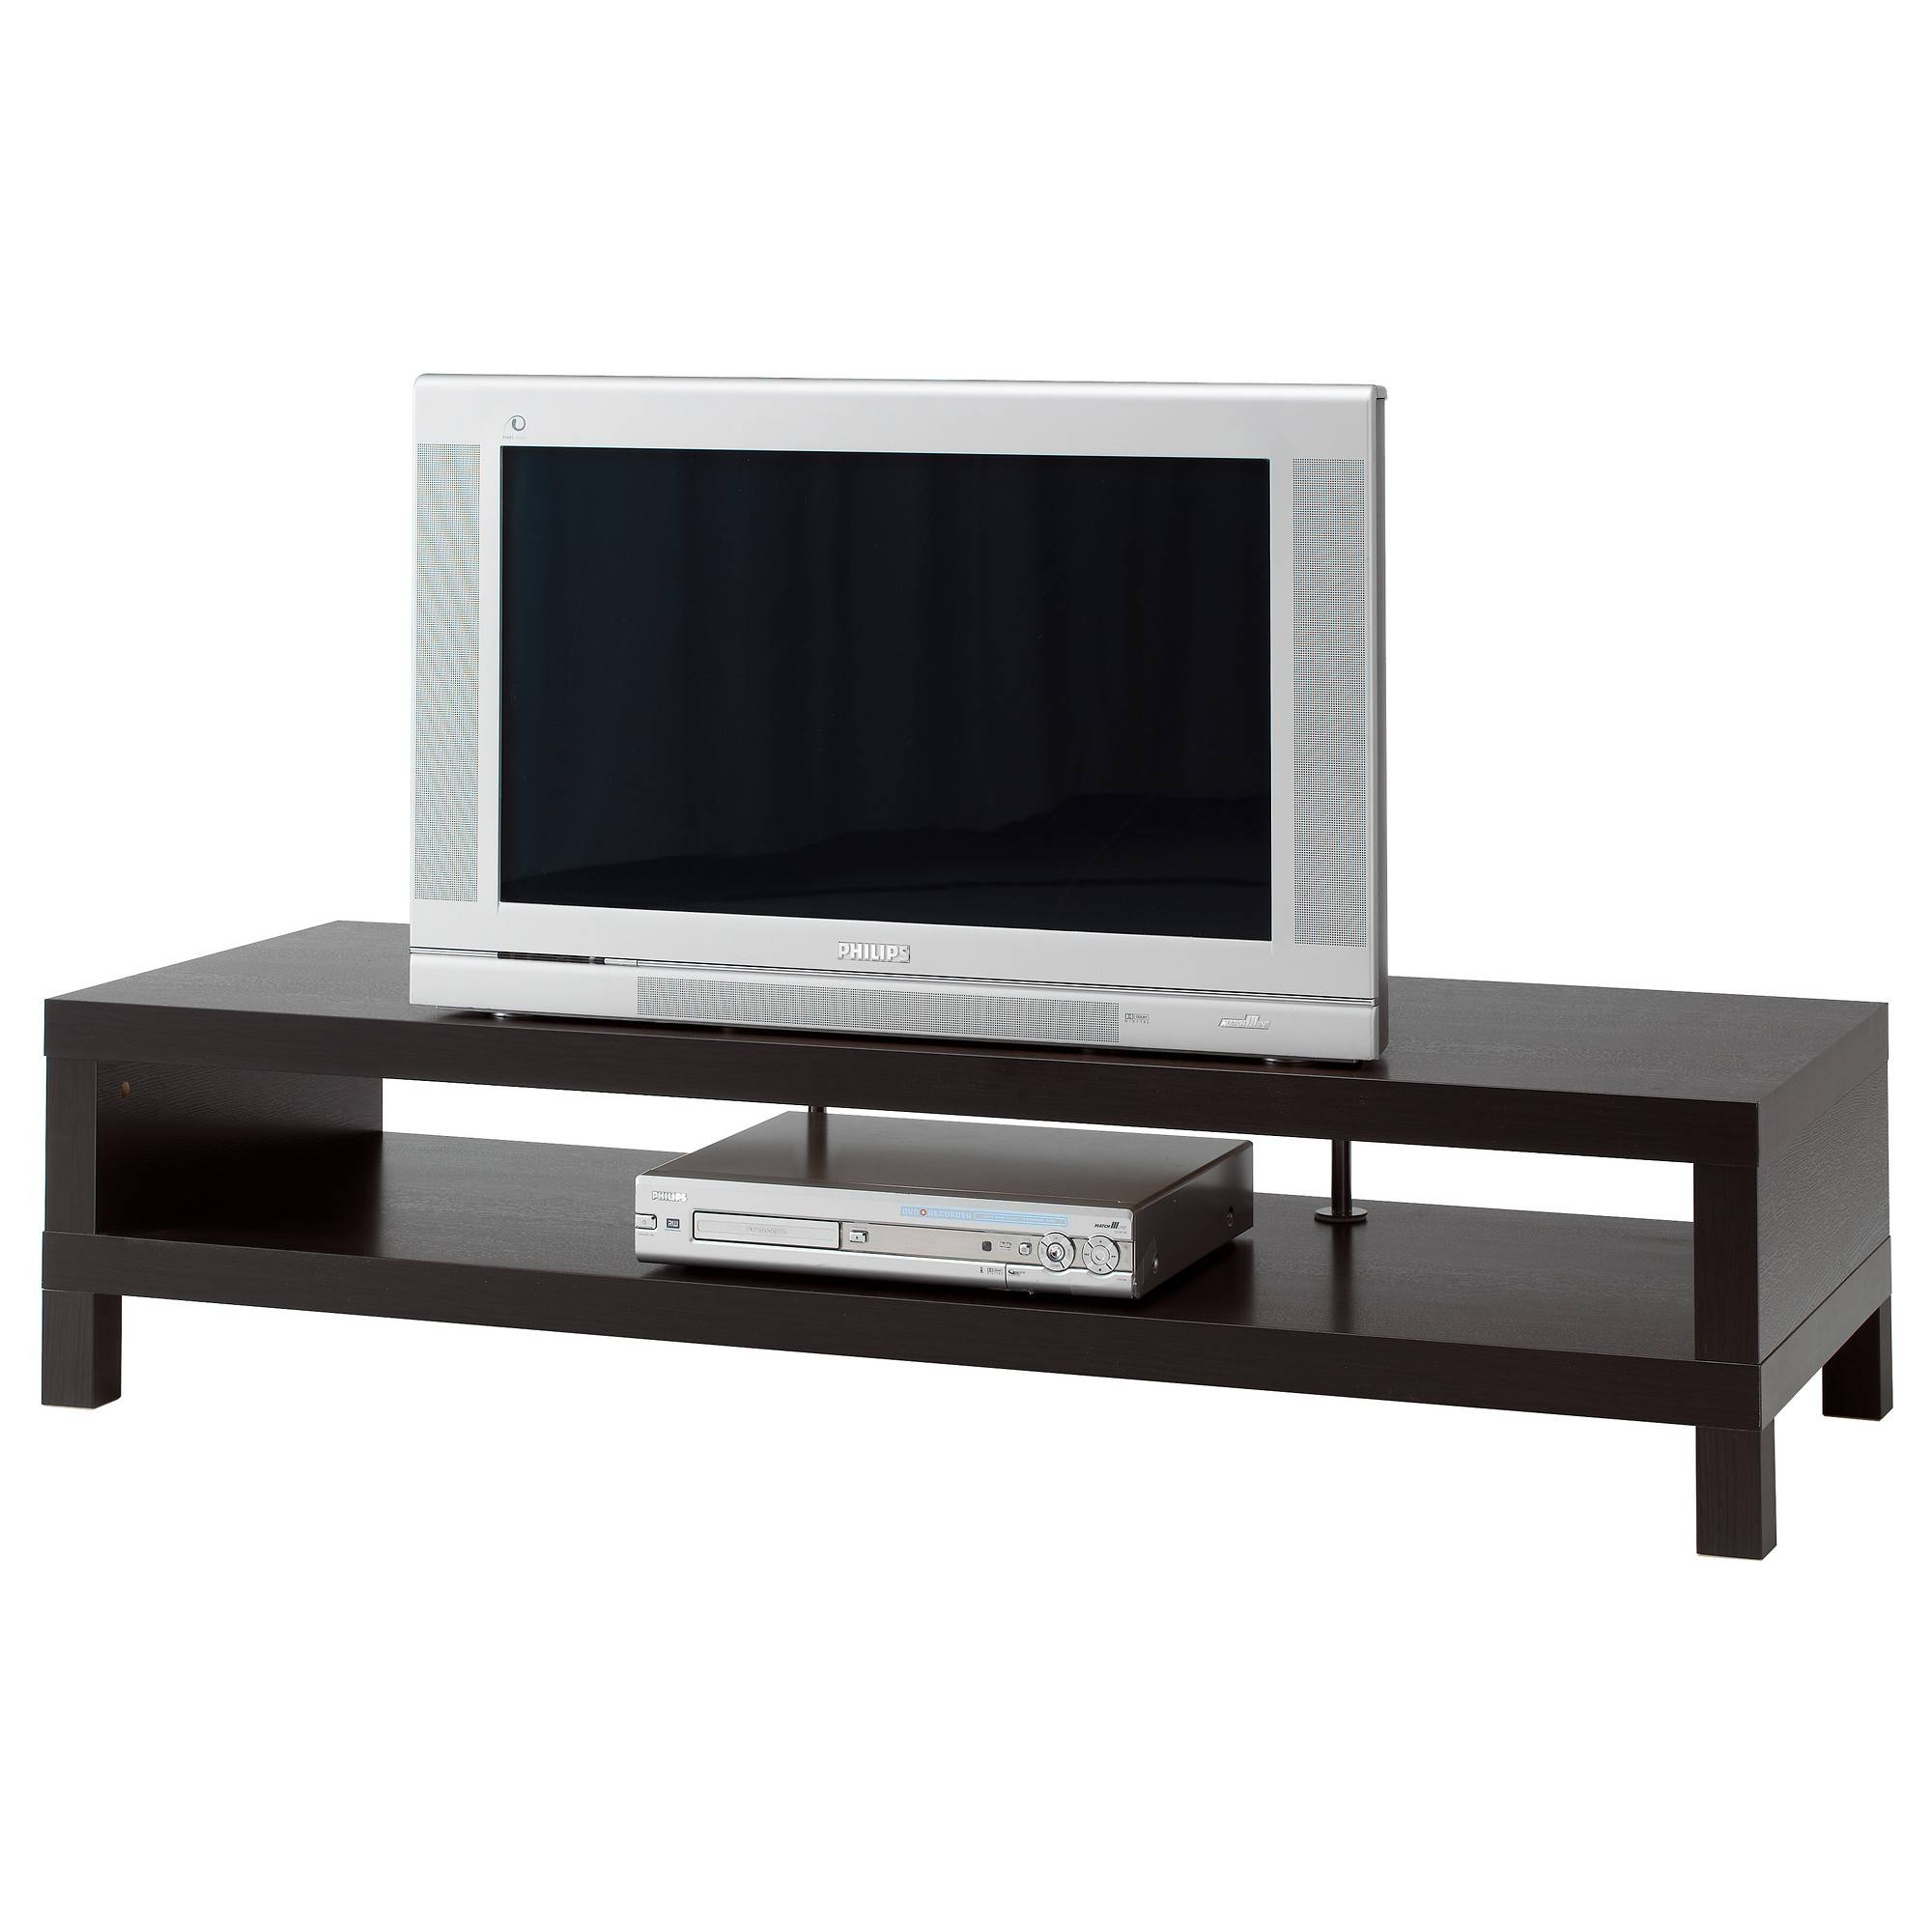 Lack Tv Unit - Ikea within Long Tv Stands Furniture (Image 4 of 15)